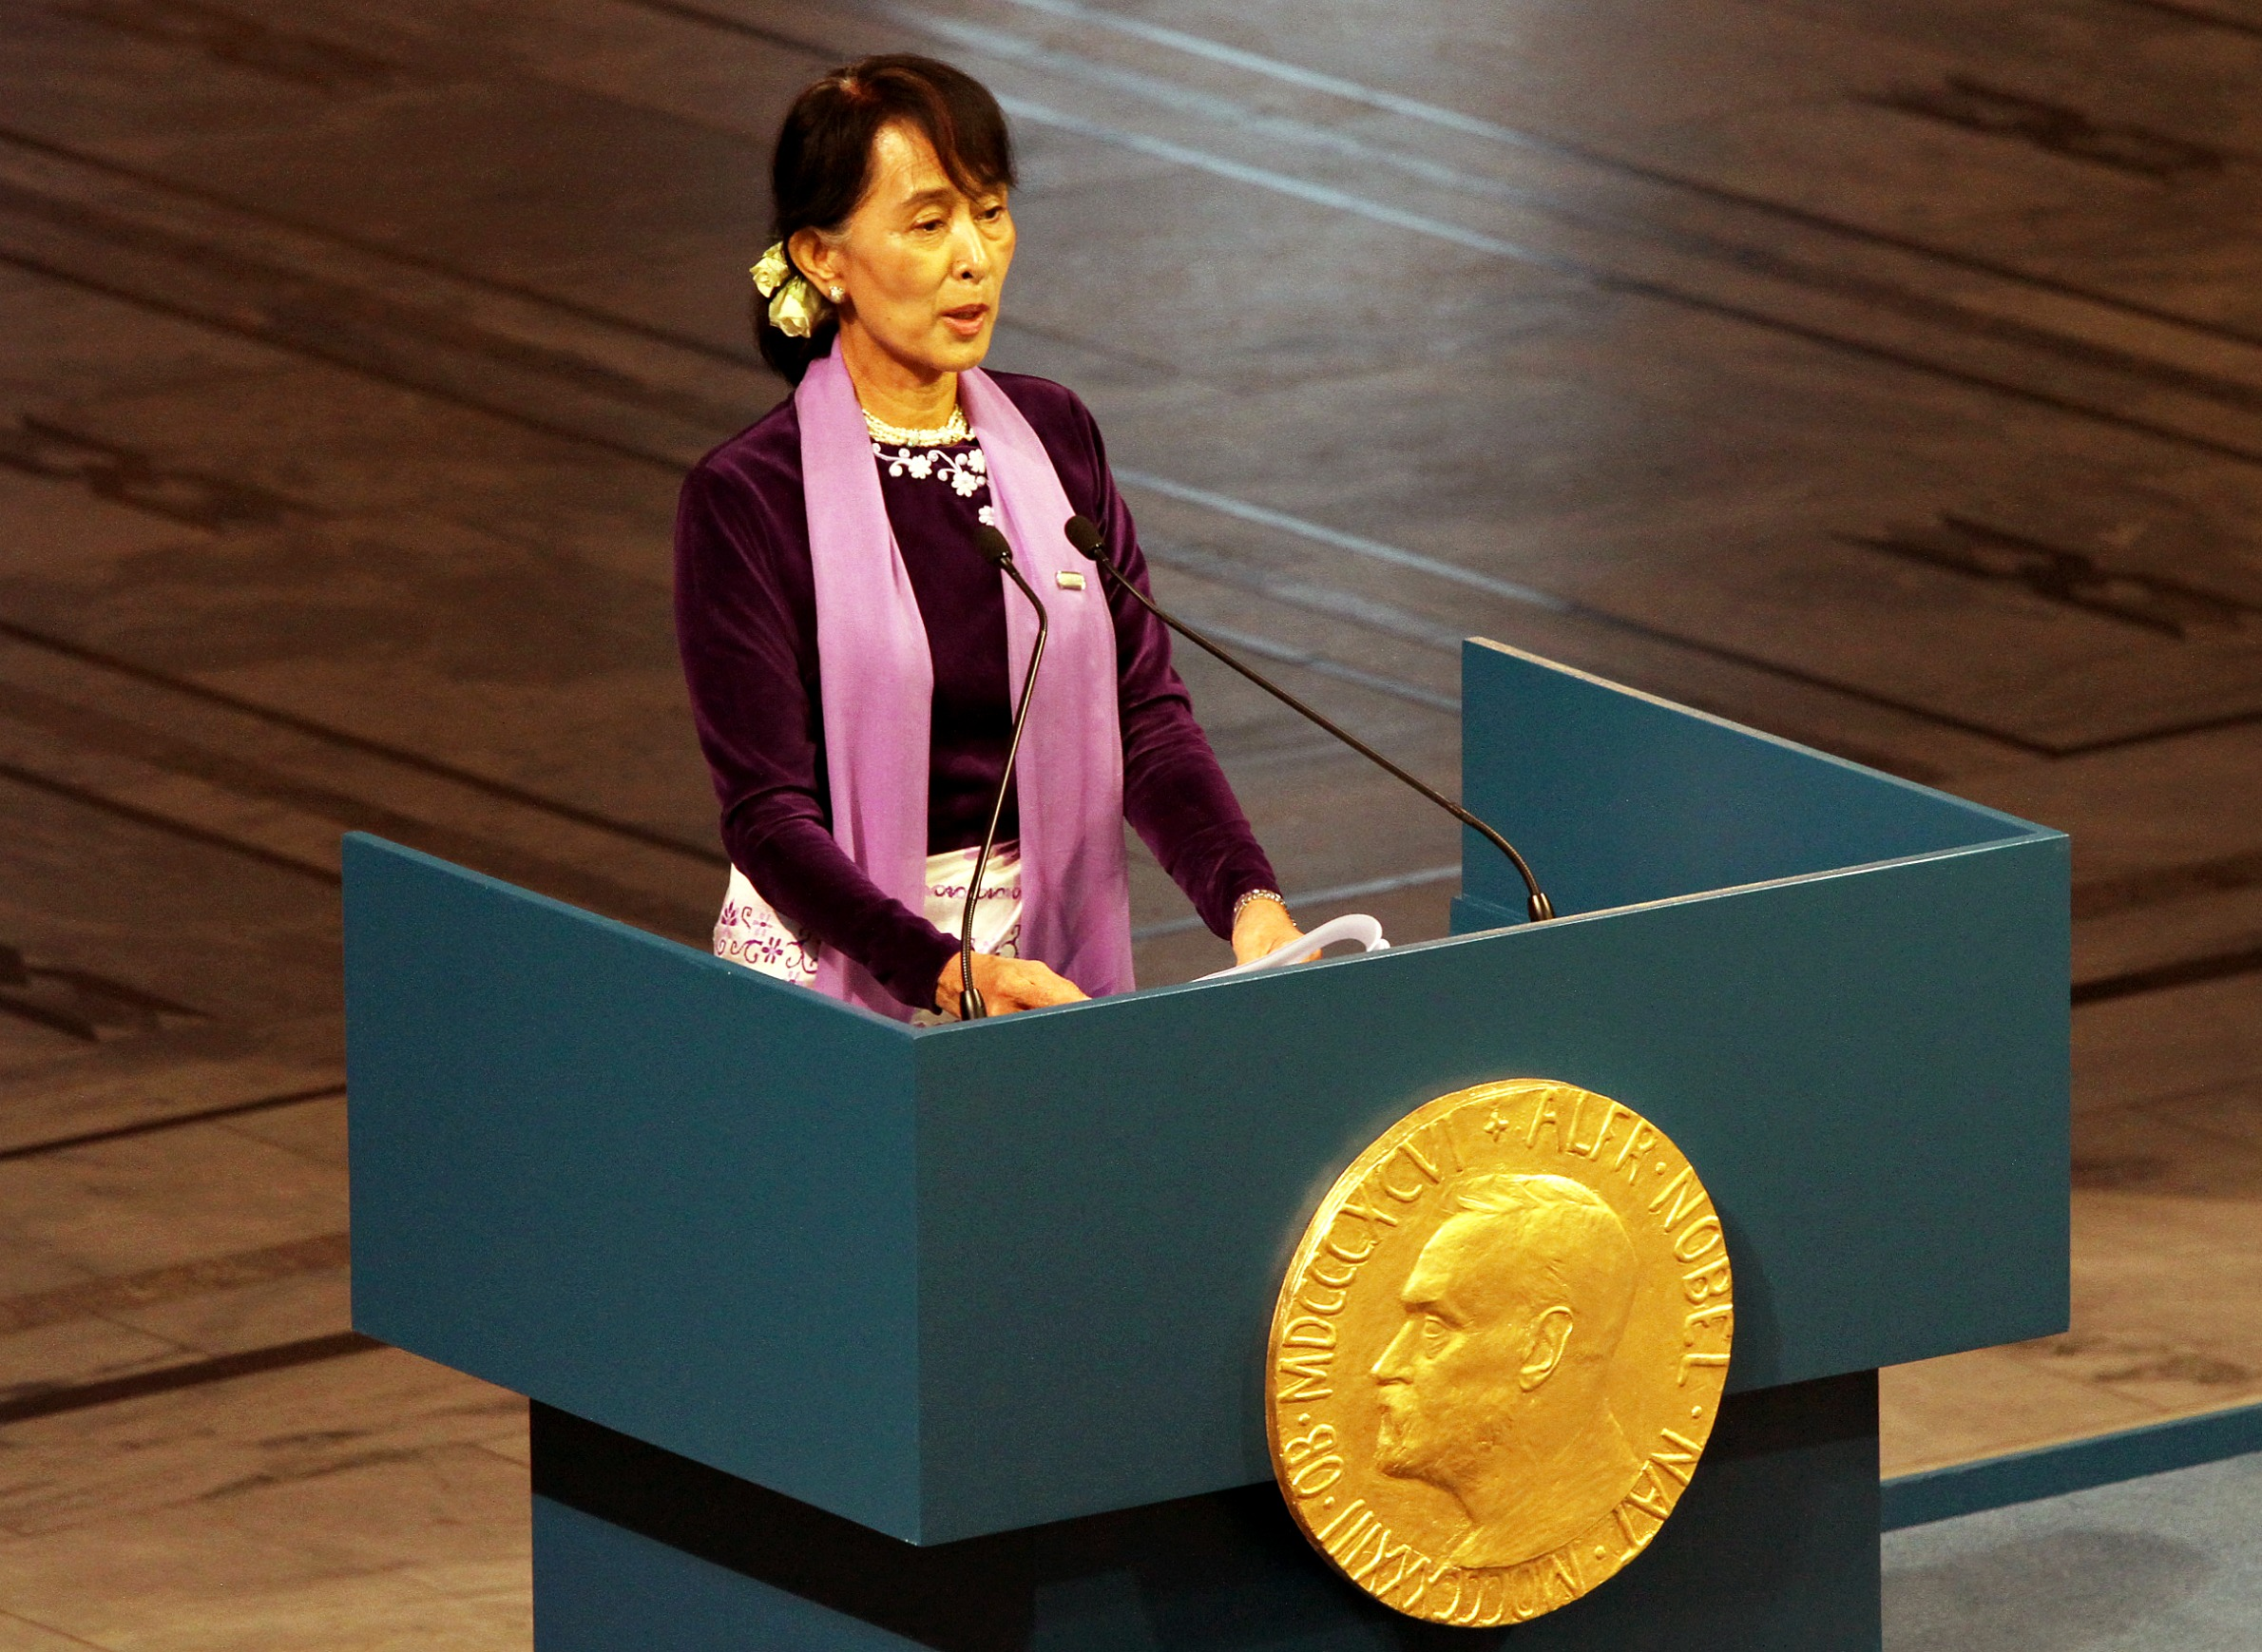 a short essay on aung san suu kyi Daw aung san suu is known as a political leader in her country born in yangon, myanmar, which is now called rangoon, burma suu kyi was the.